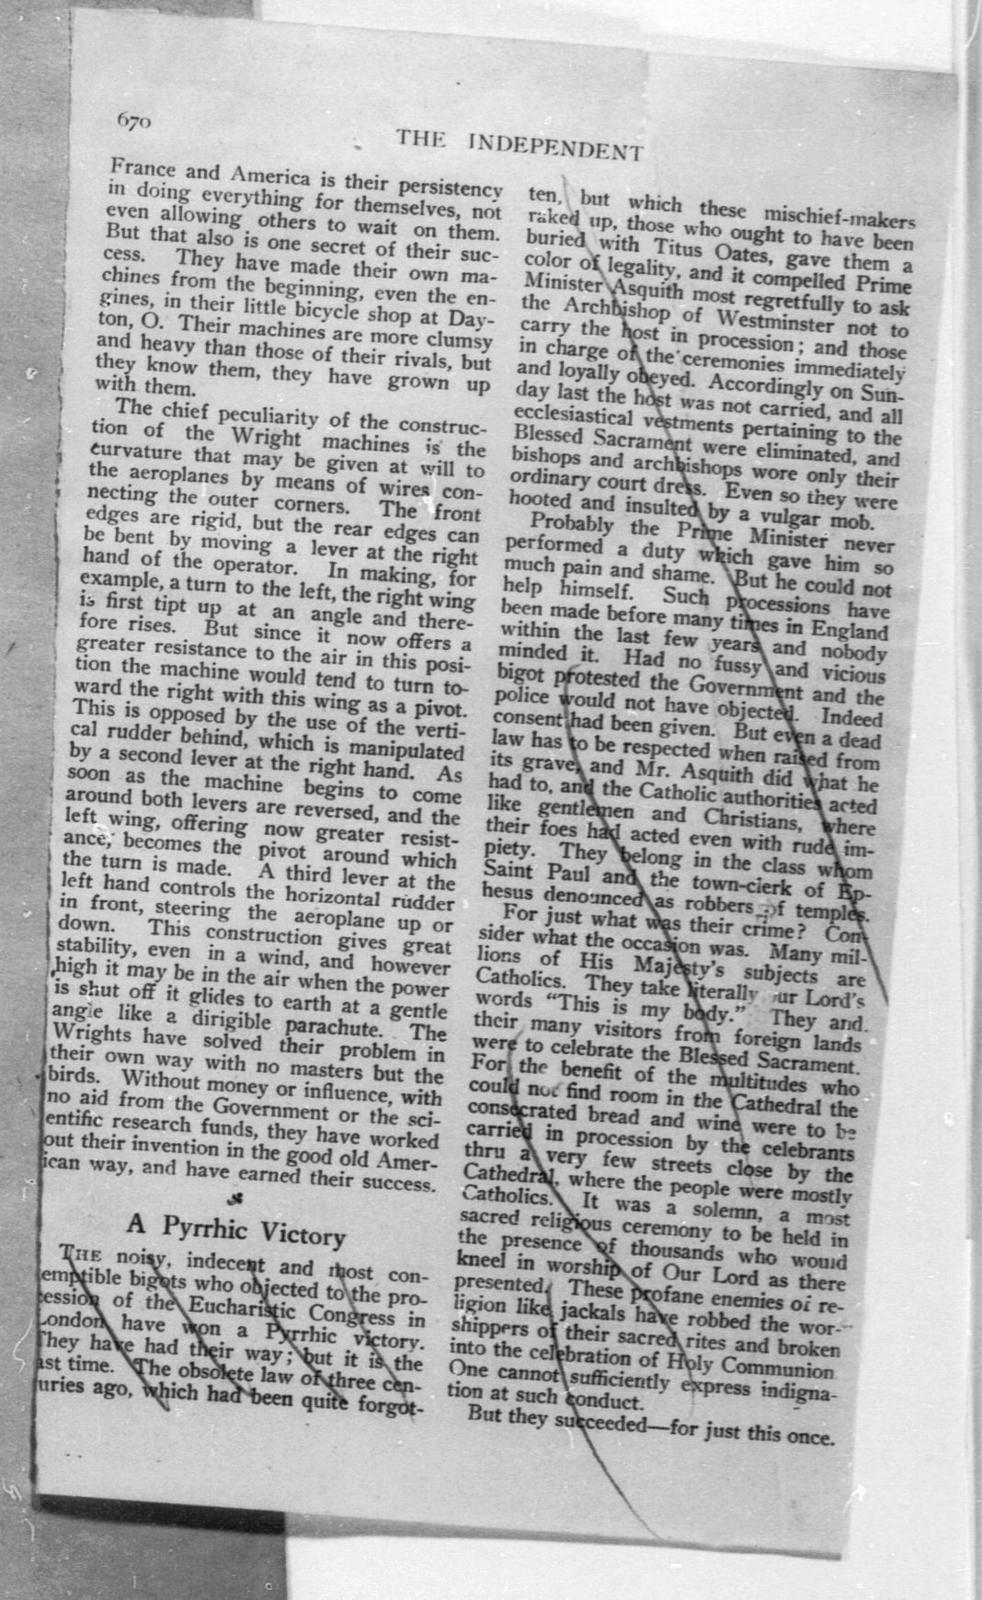 The Wright Brothers [editorial, Independent, 17 September 1908]